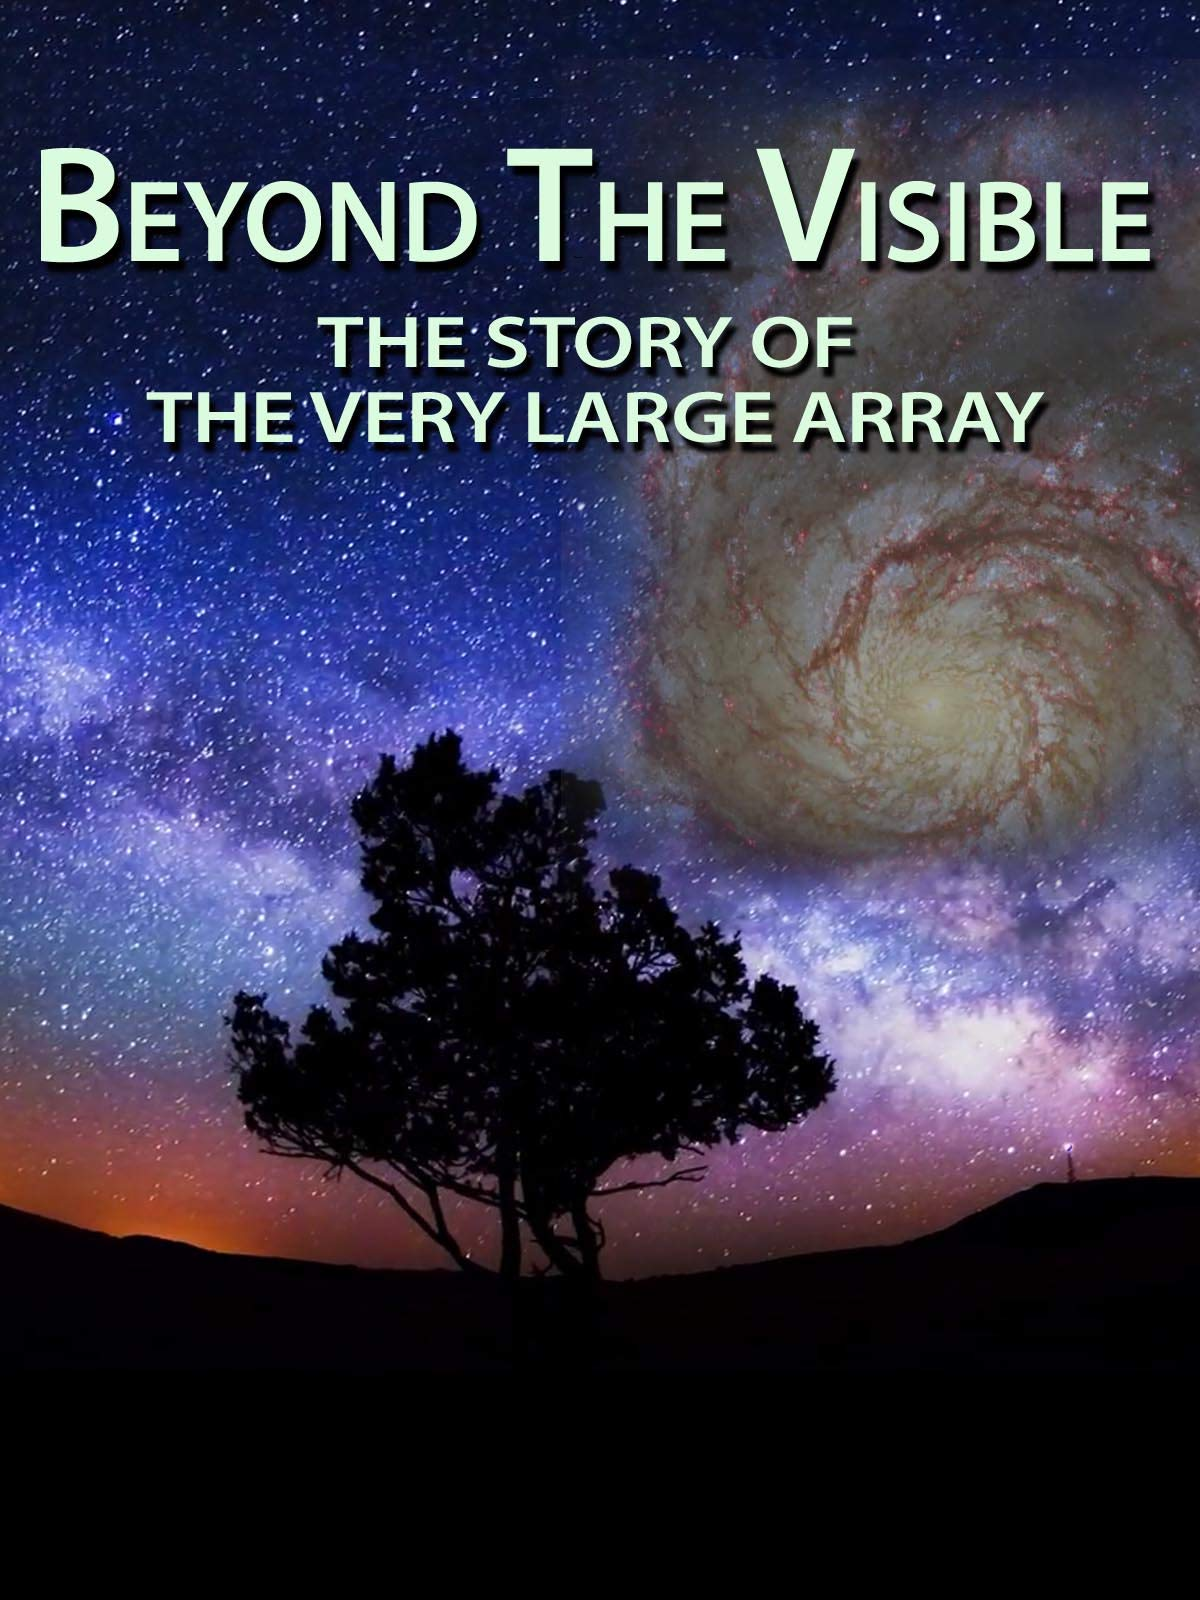 Beyond The Visible: The Story of the Very Large Array on Amazon Prime Video UK